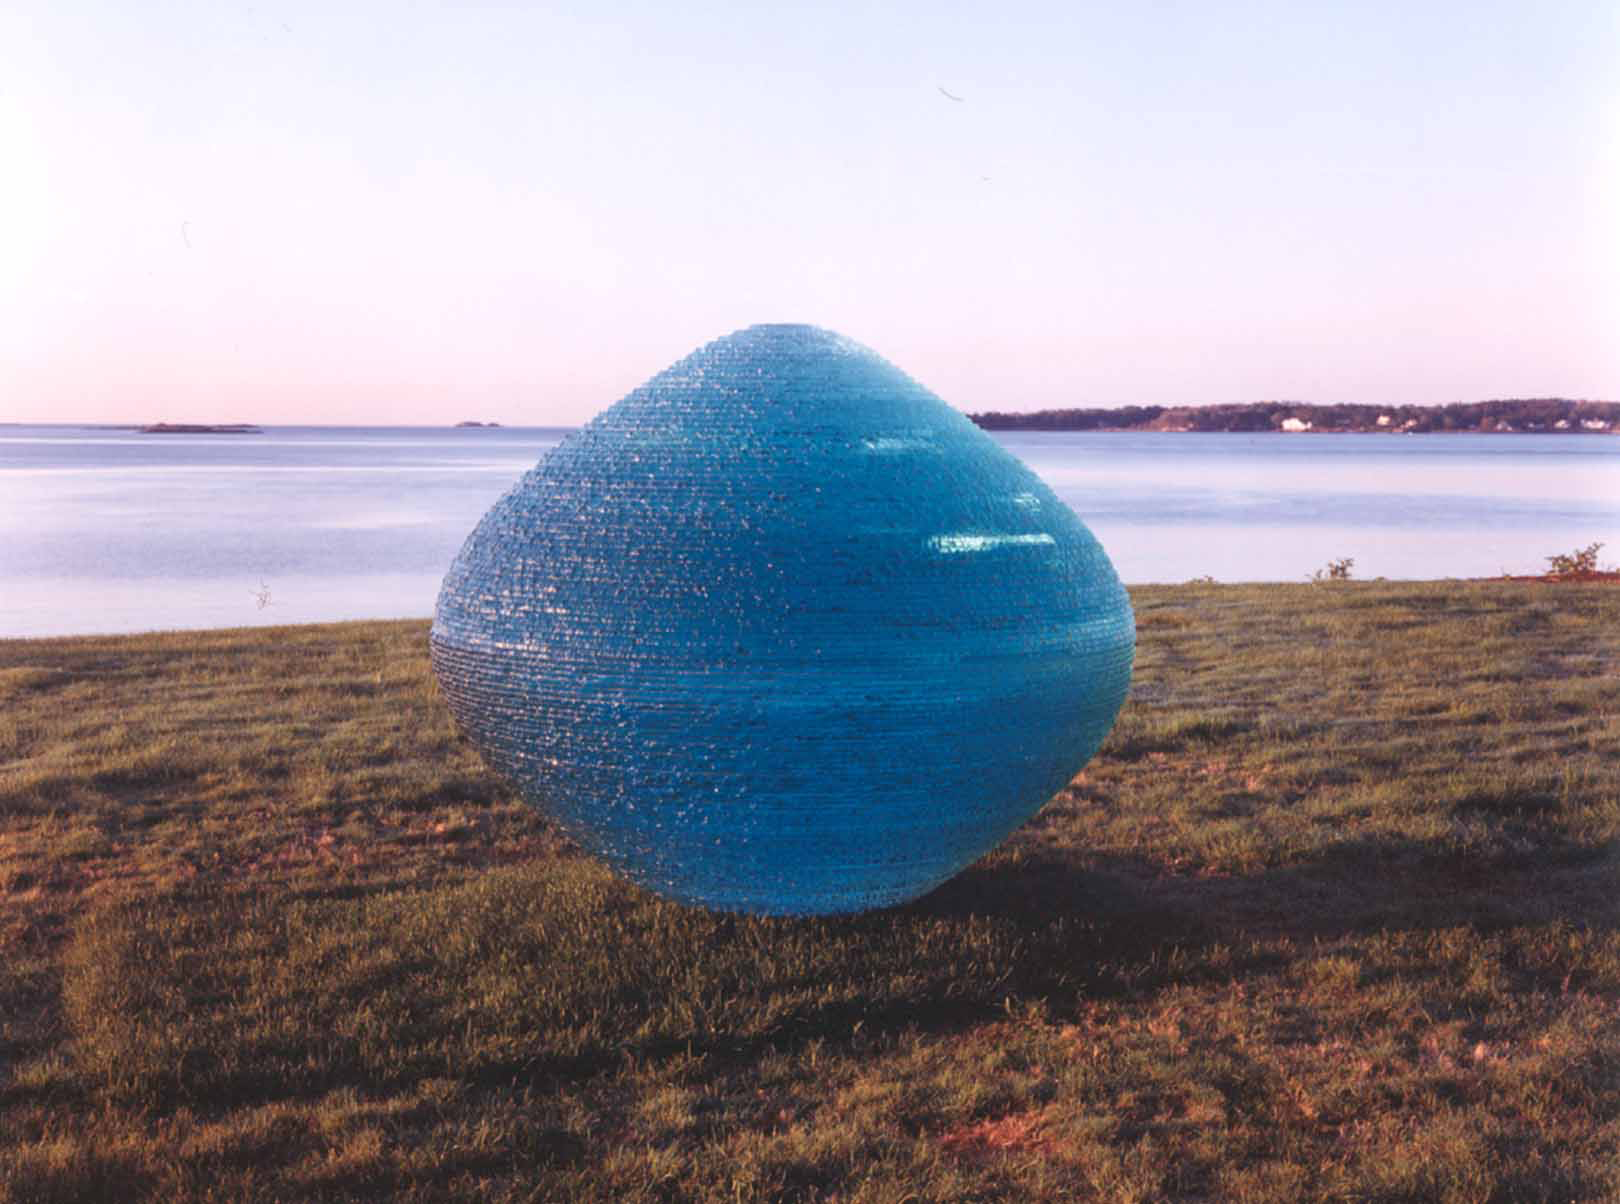 Henry-Richardson-coming-of-age-blue-glass-art-spheroid-sculpture.jpg